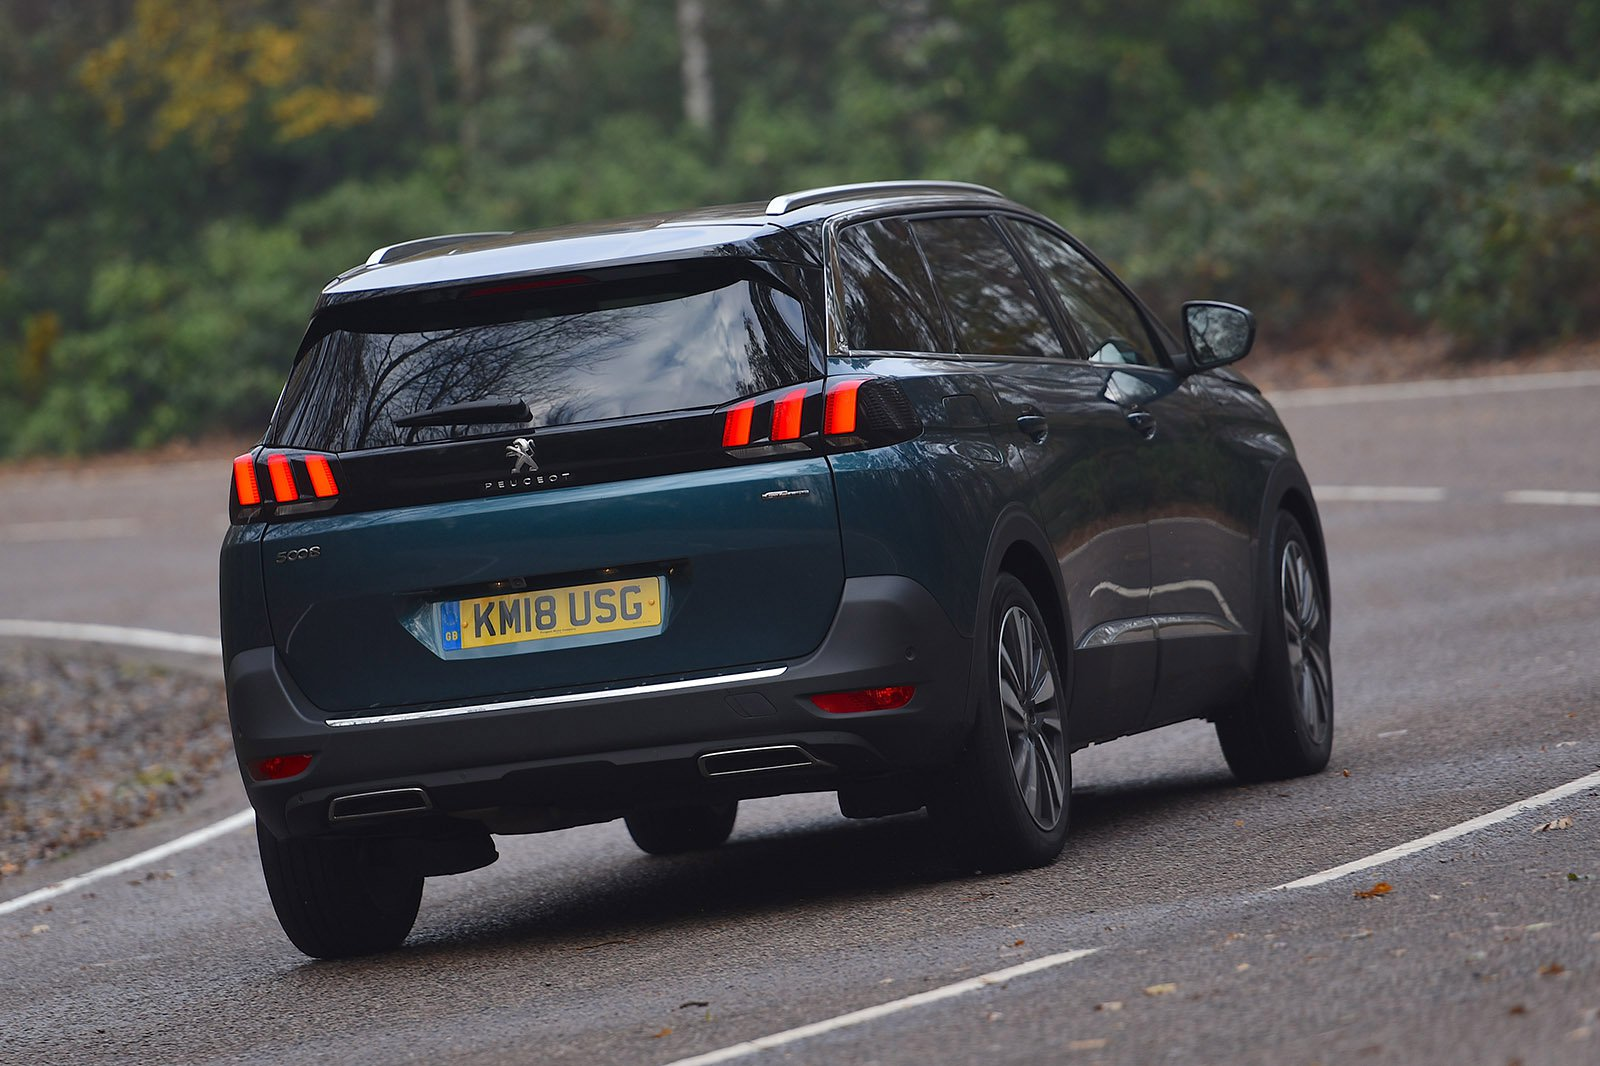 2018 Peugeot 5008 rear right tracking RHD